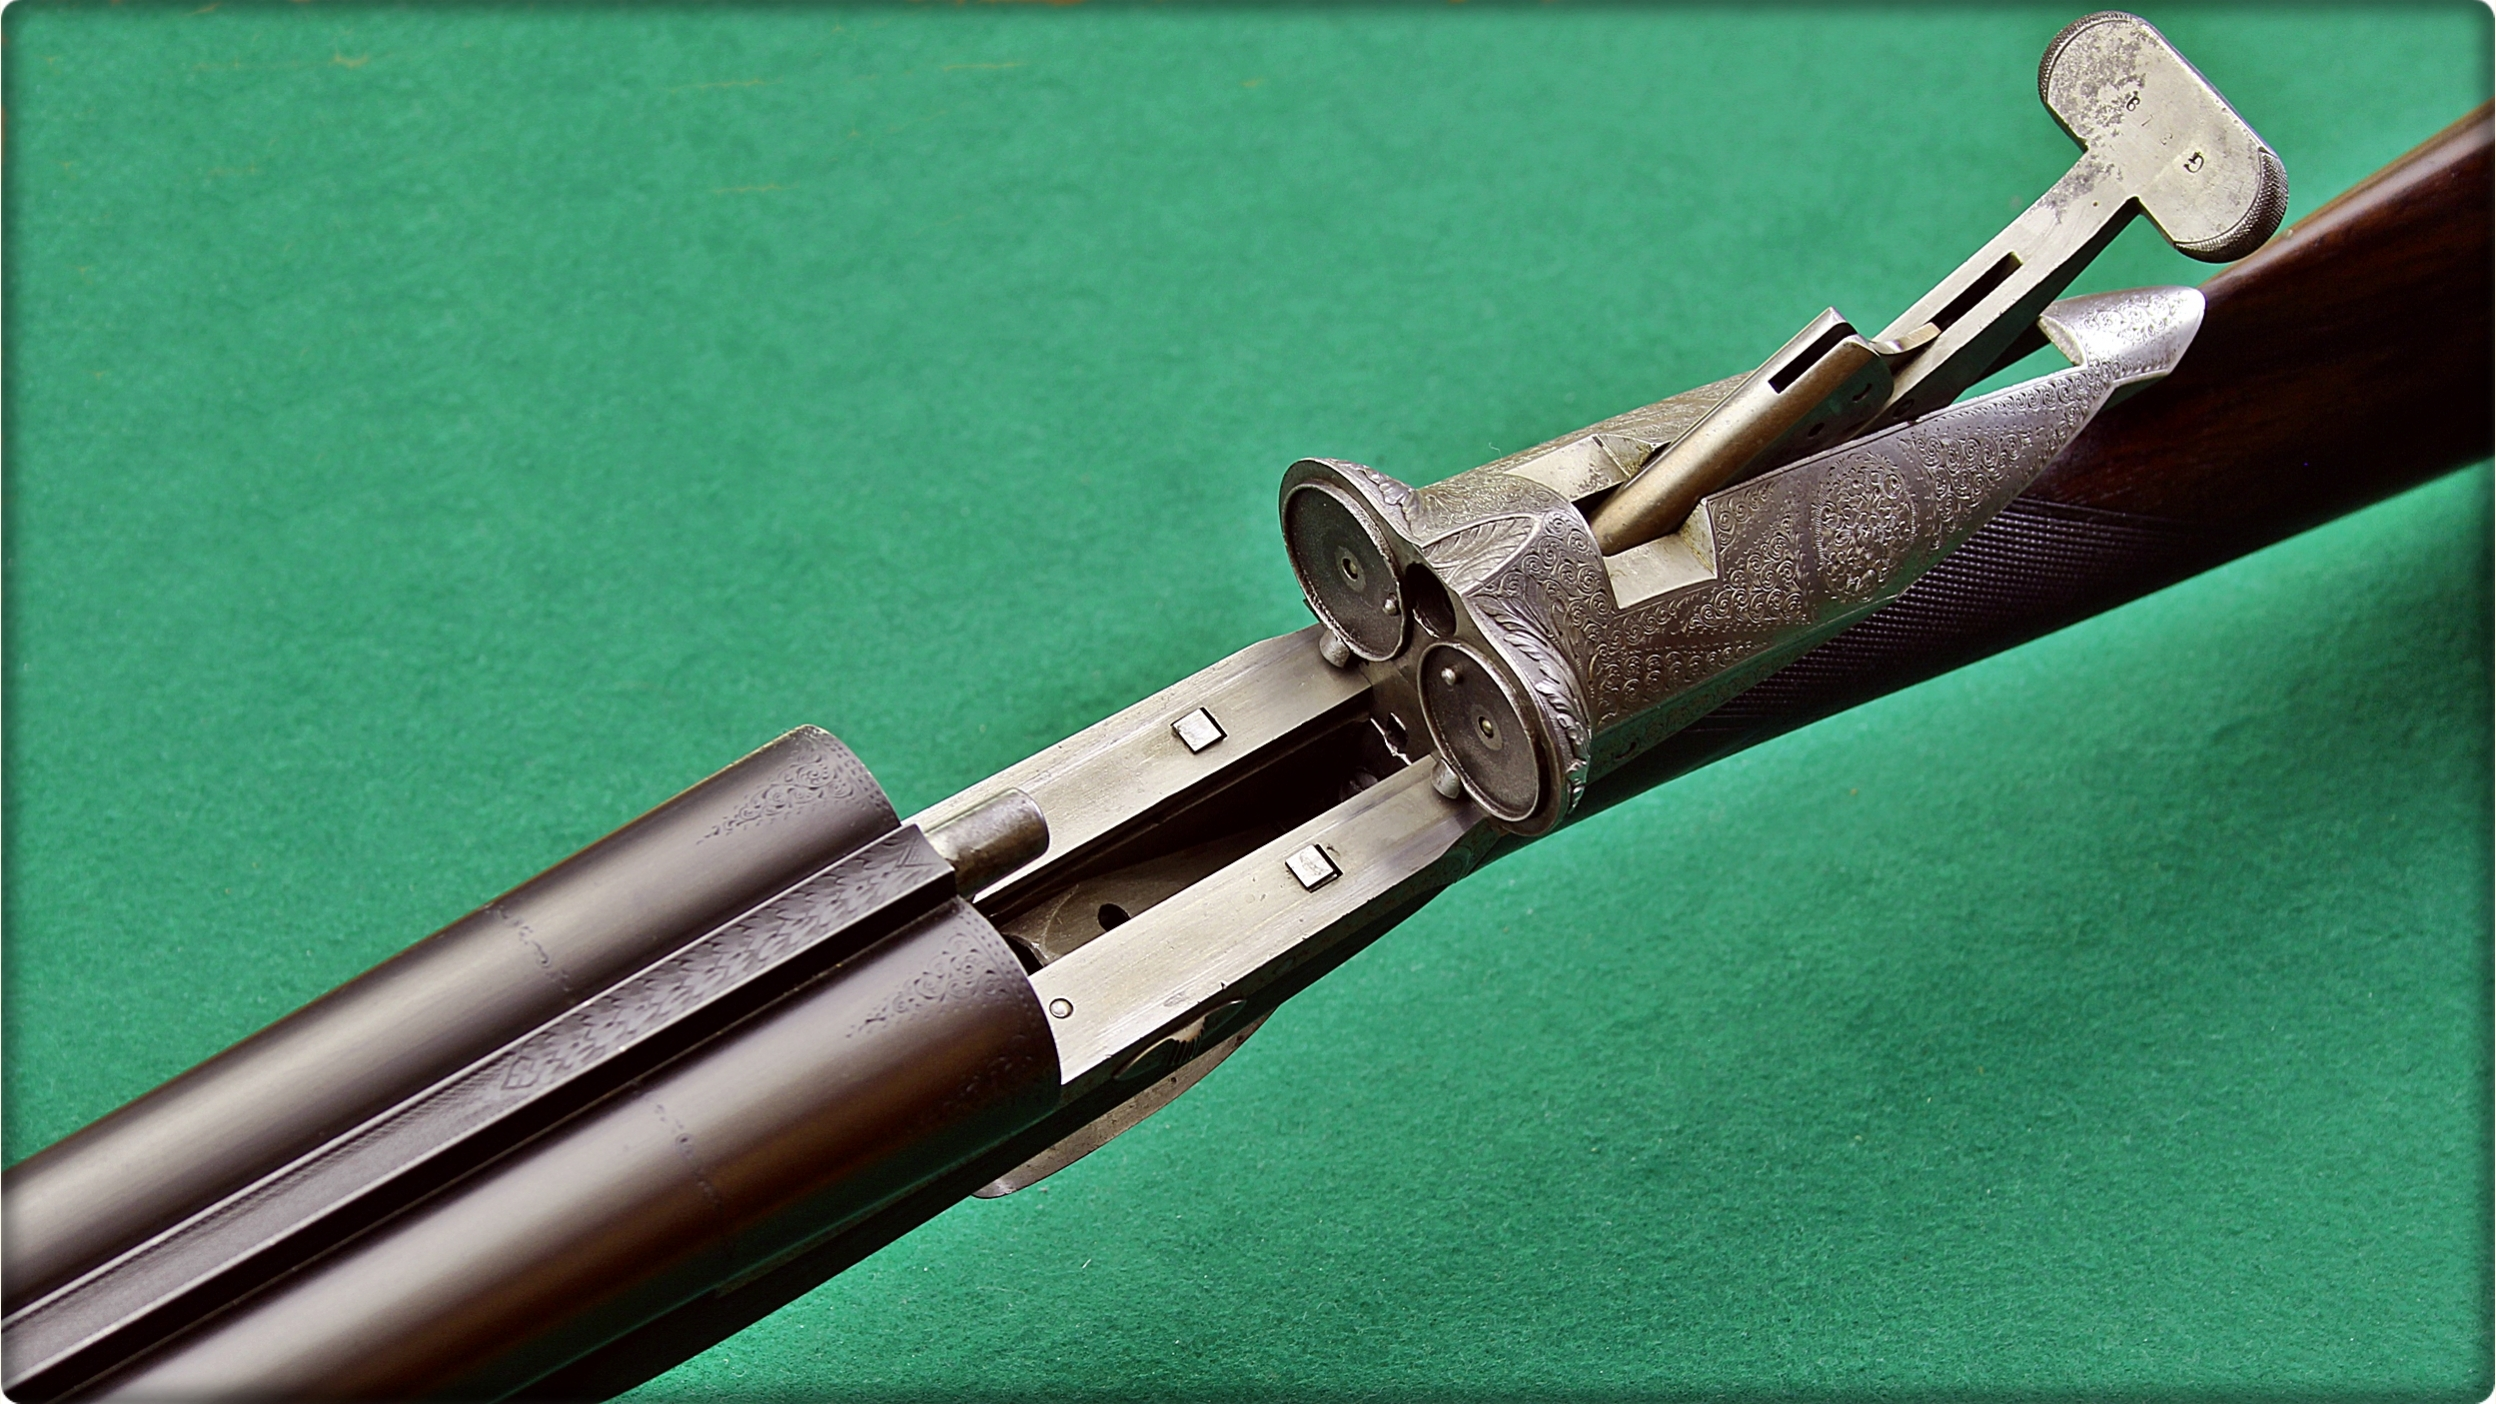 Despite being a double barreled side by side gun the Darne does not open on a hinge like a conventional gun but the barrels are fixed and lifting the handle on the rear of the action slides the breech block rearwards. The extractors and plunger ejectors are visible in this picture. (Picture courtesy steniron.com).